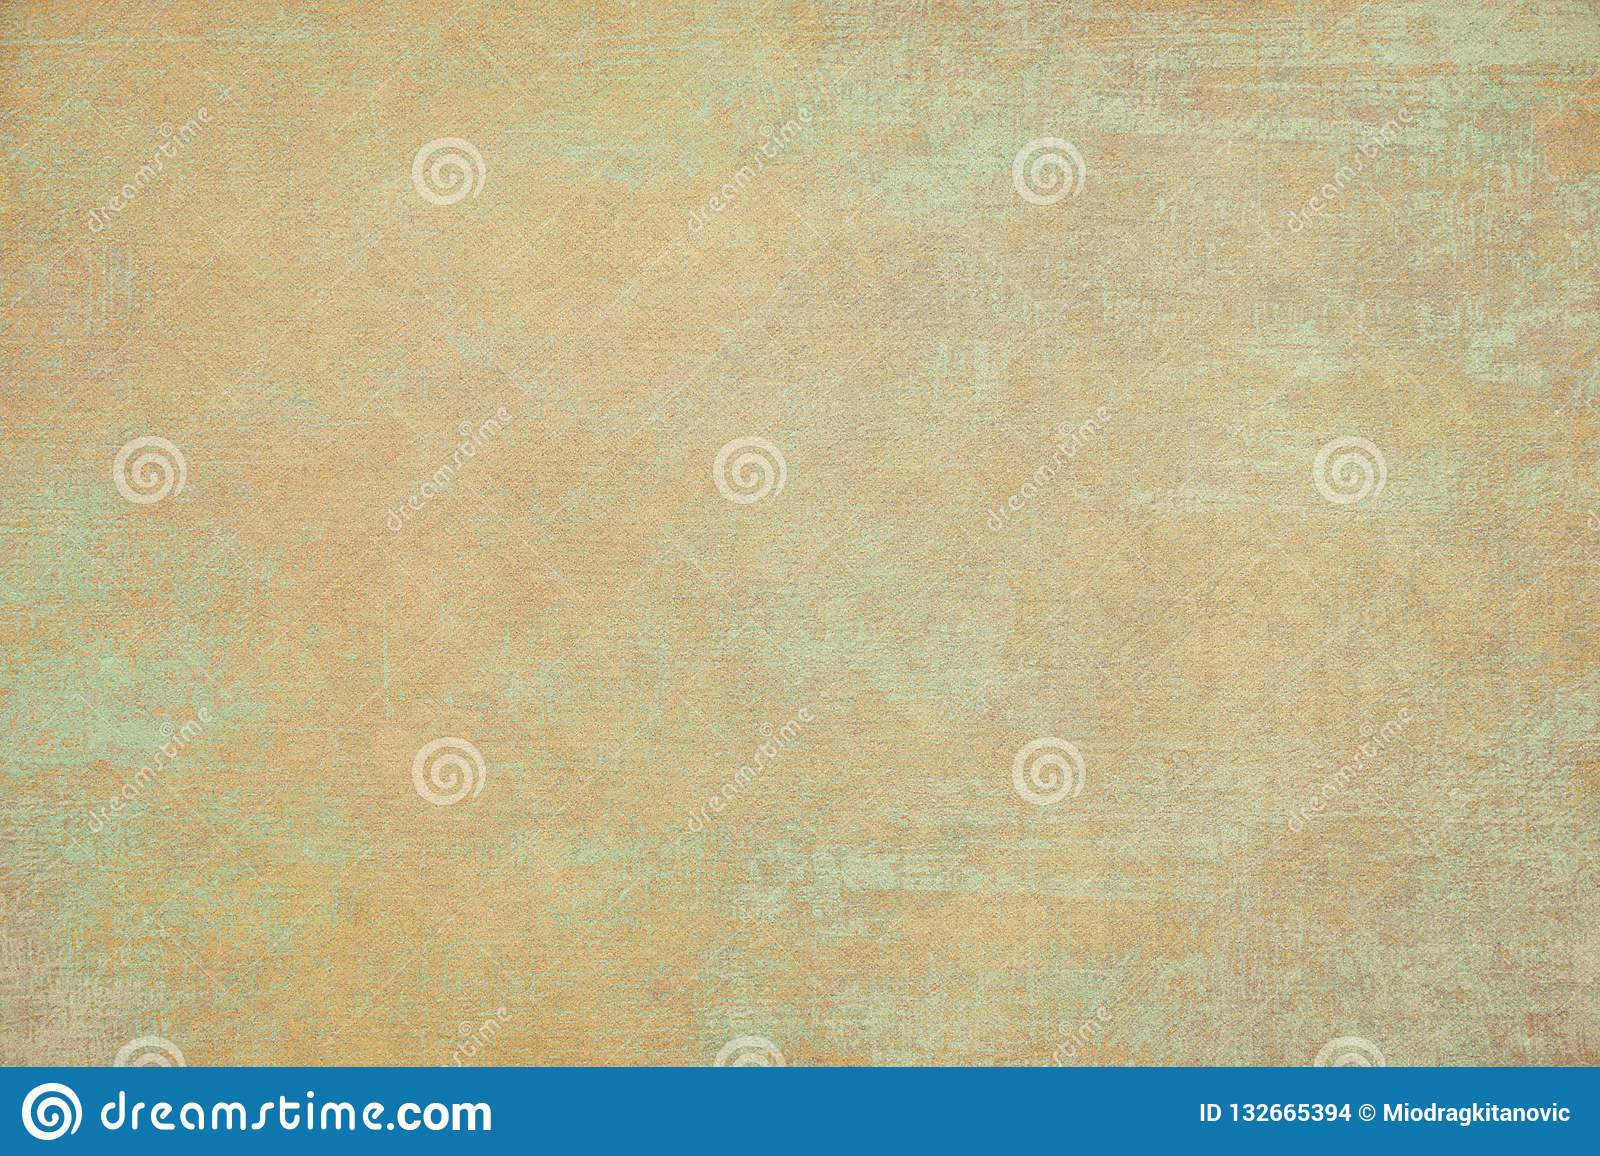 Rugged Wrinkled Paper Background Stock Photo Image Of Design